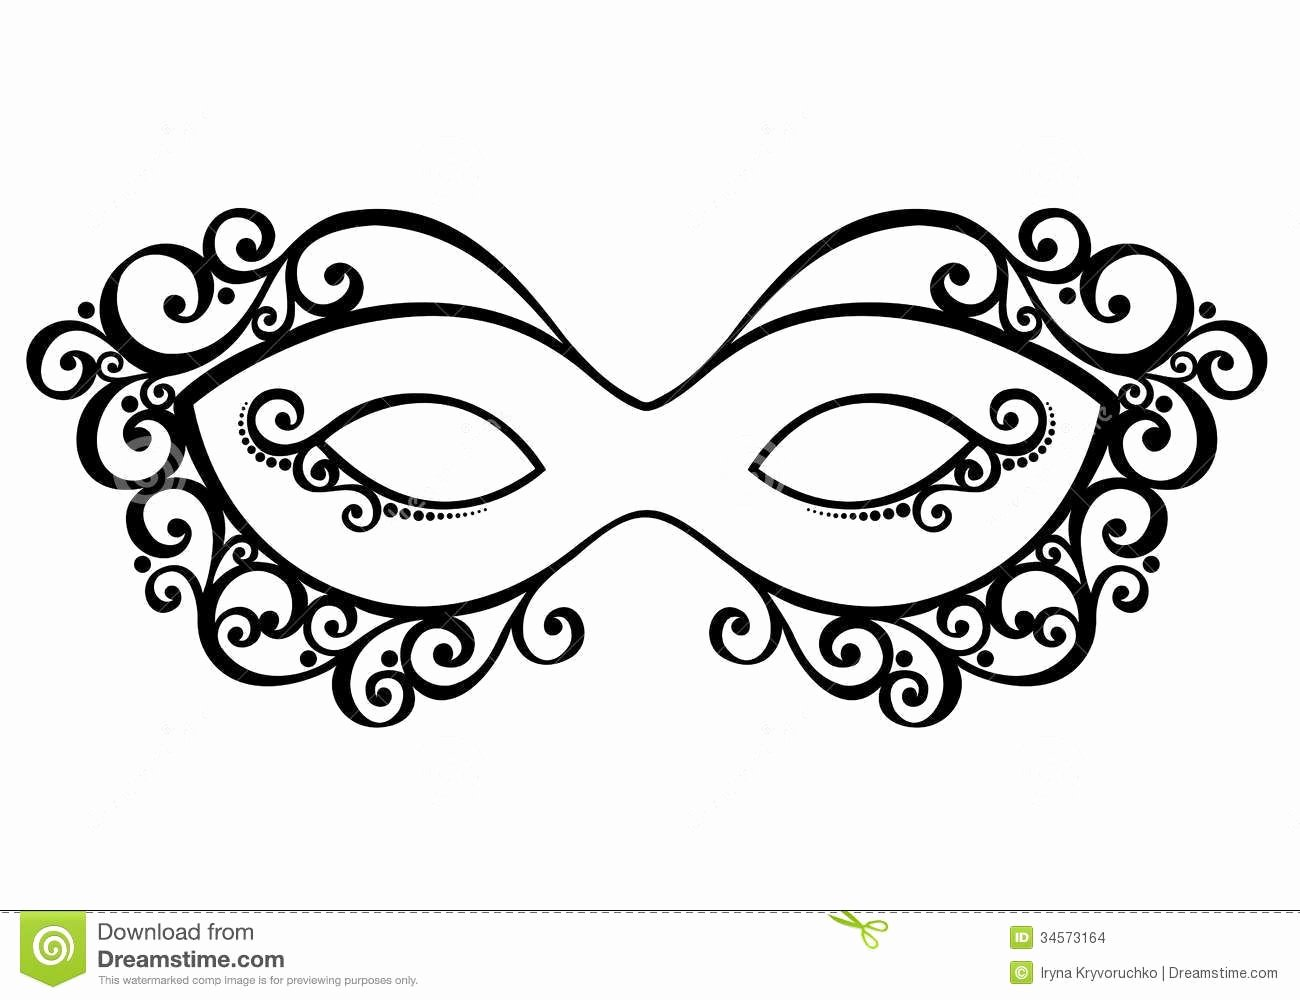 Masquerade Mask Template Printable New Masquerade Mask Download From Over 30 Million High